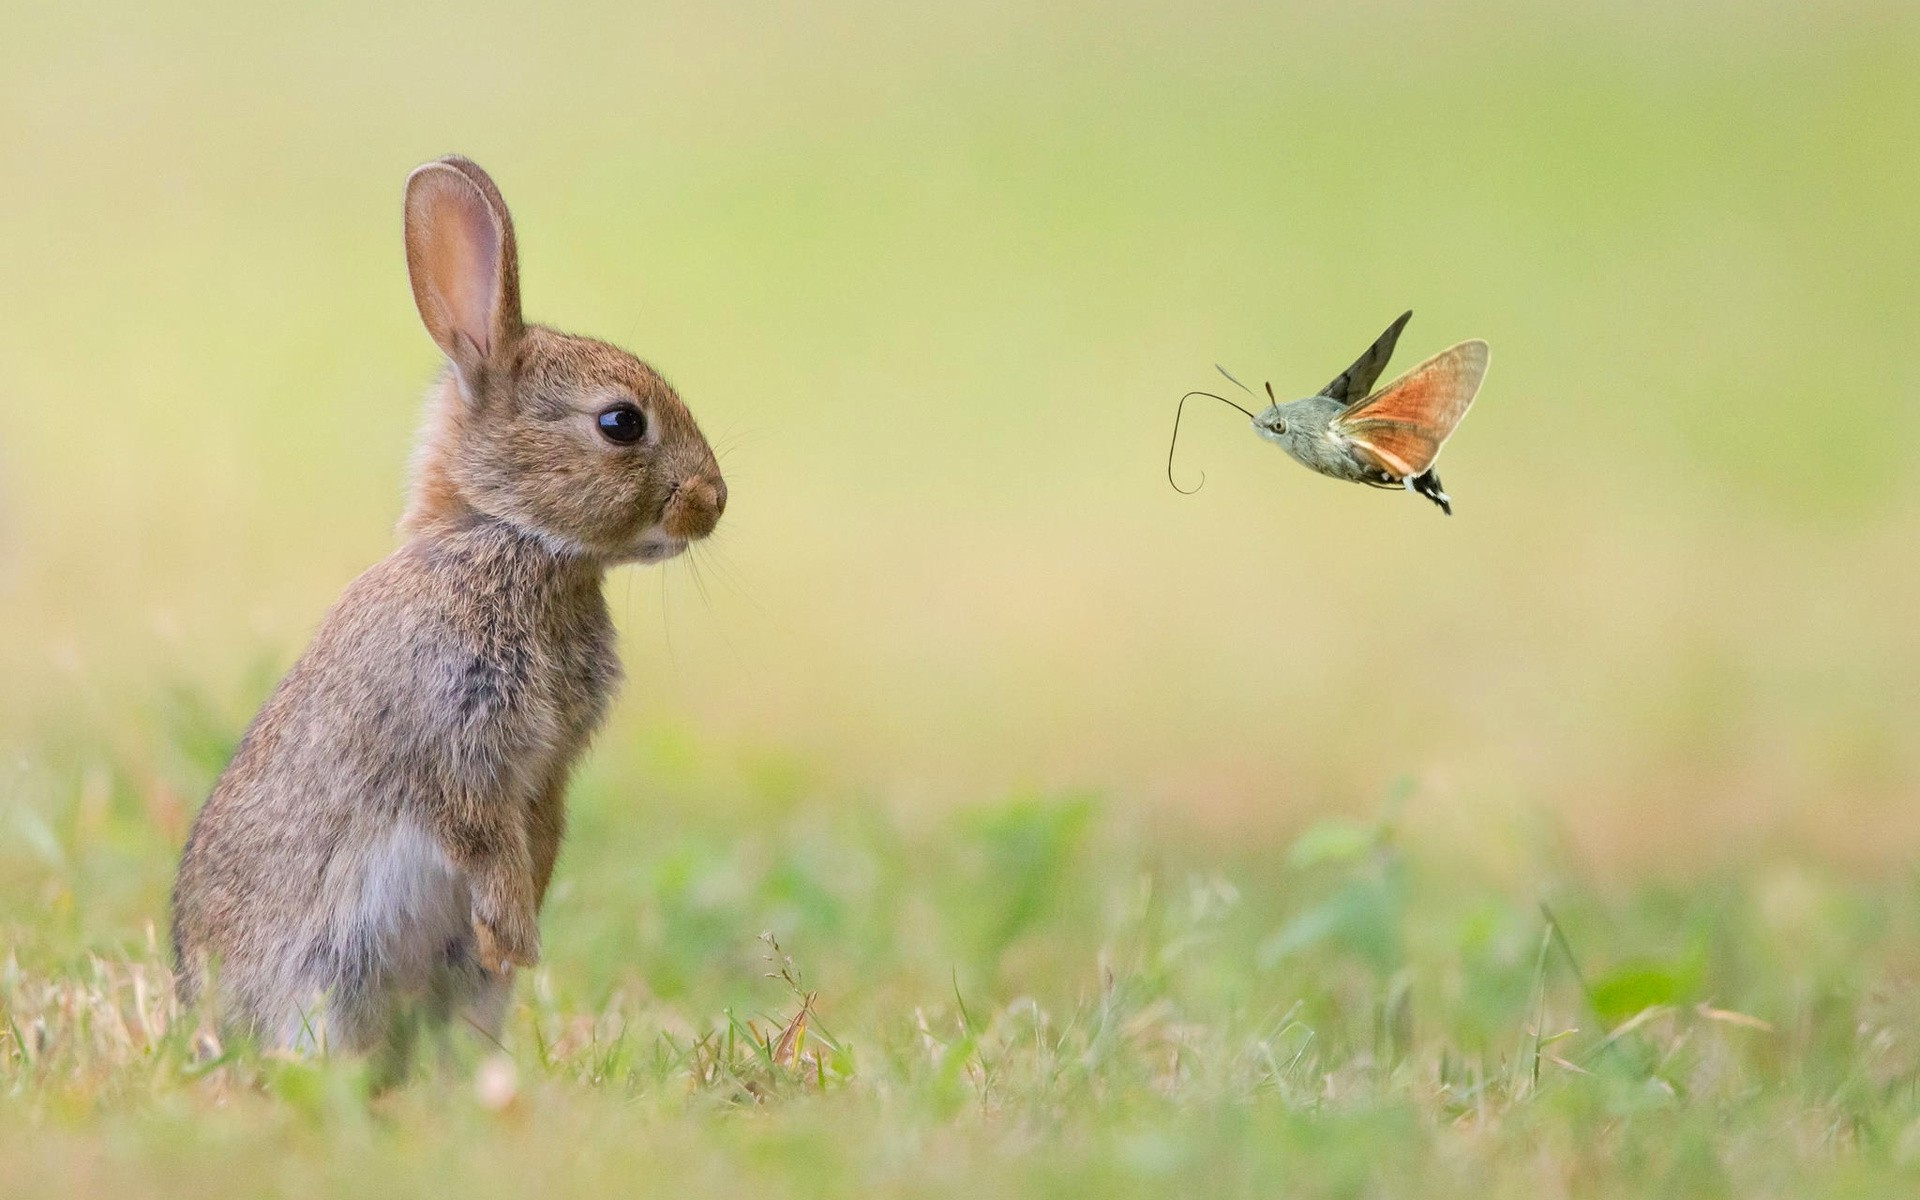 Bunny And Hummingbird Hawk Moth Hd Wallpaper Background